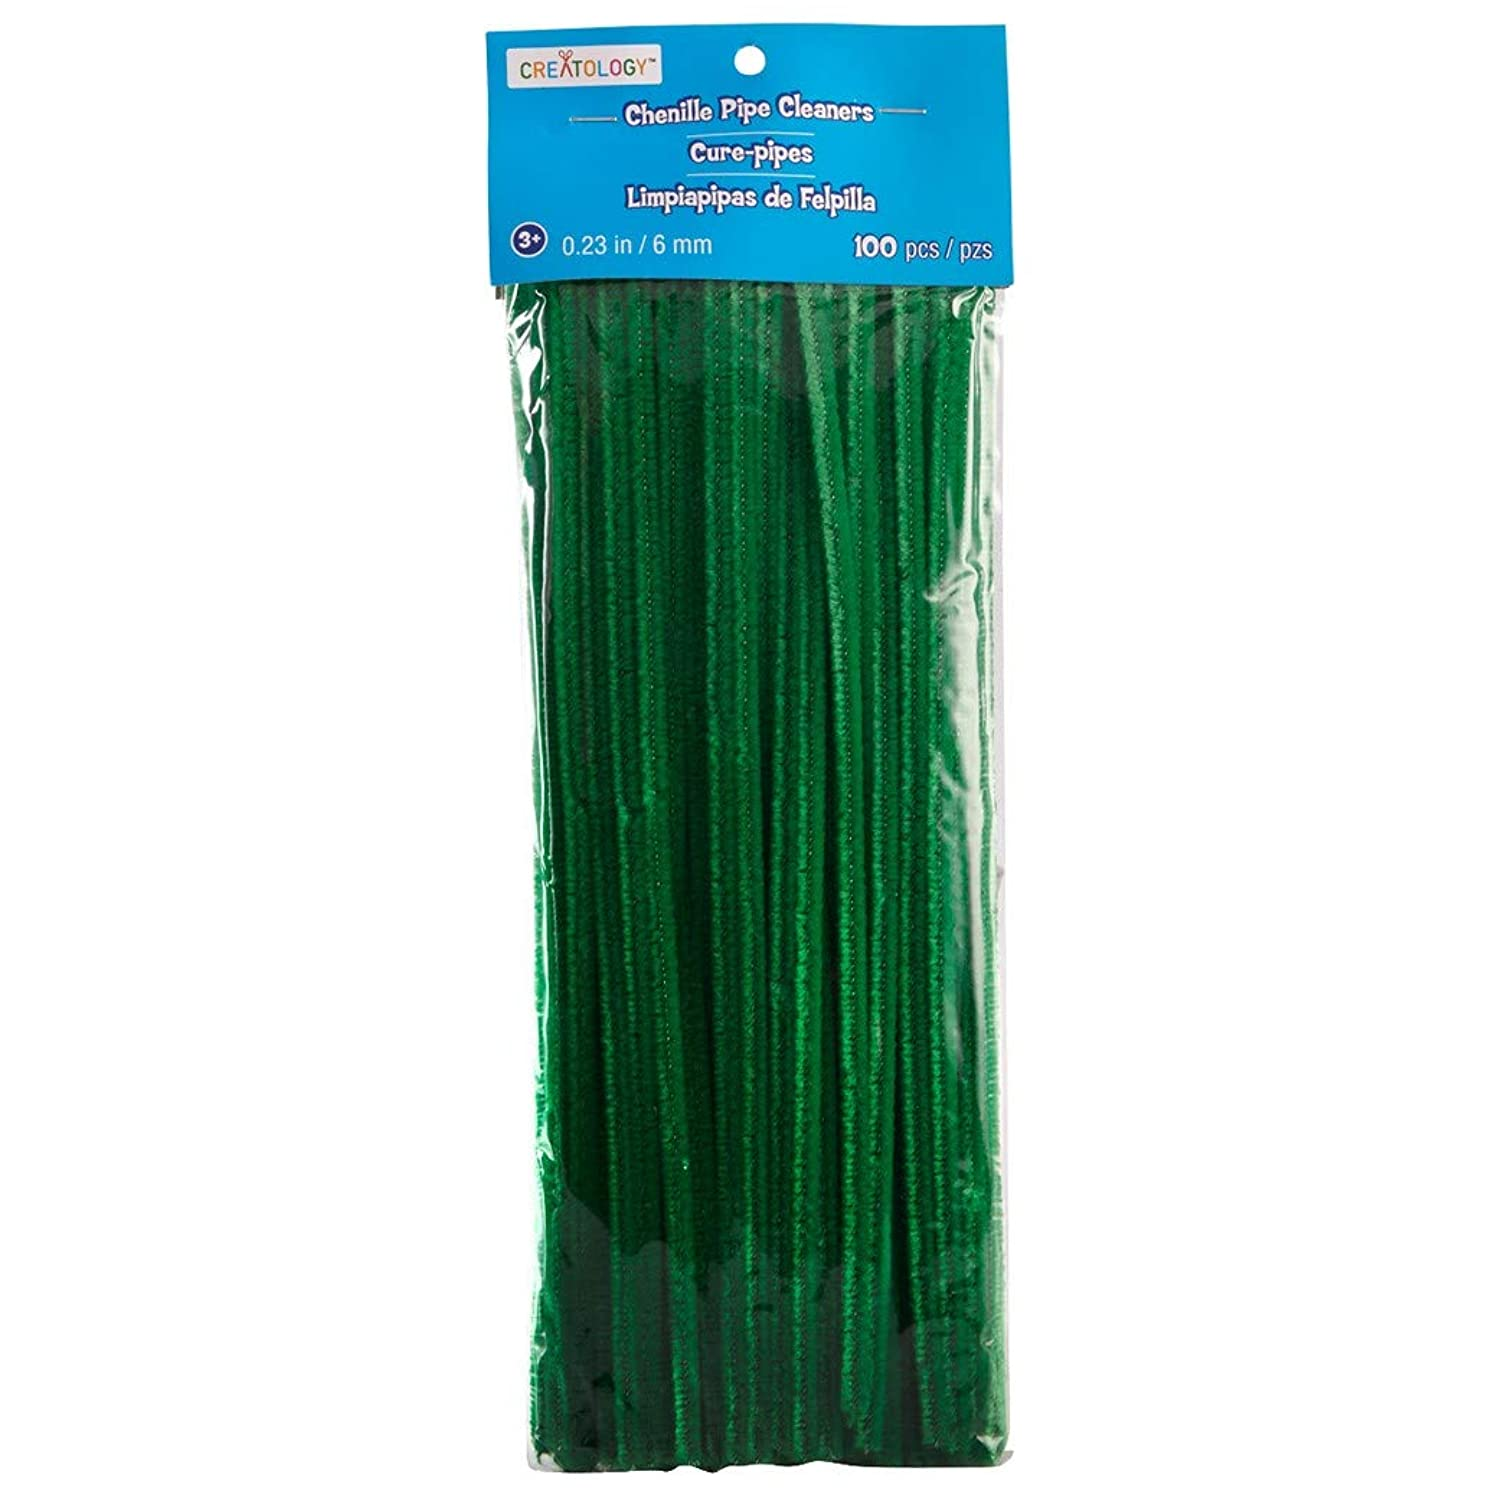 Green Chenille Stems Crafting Pipe Cleaners (100 pc)